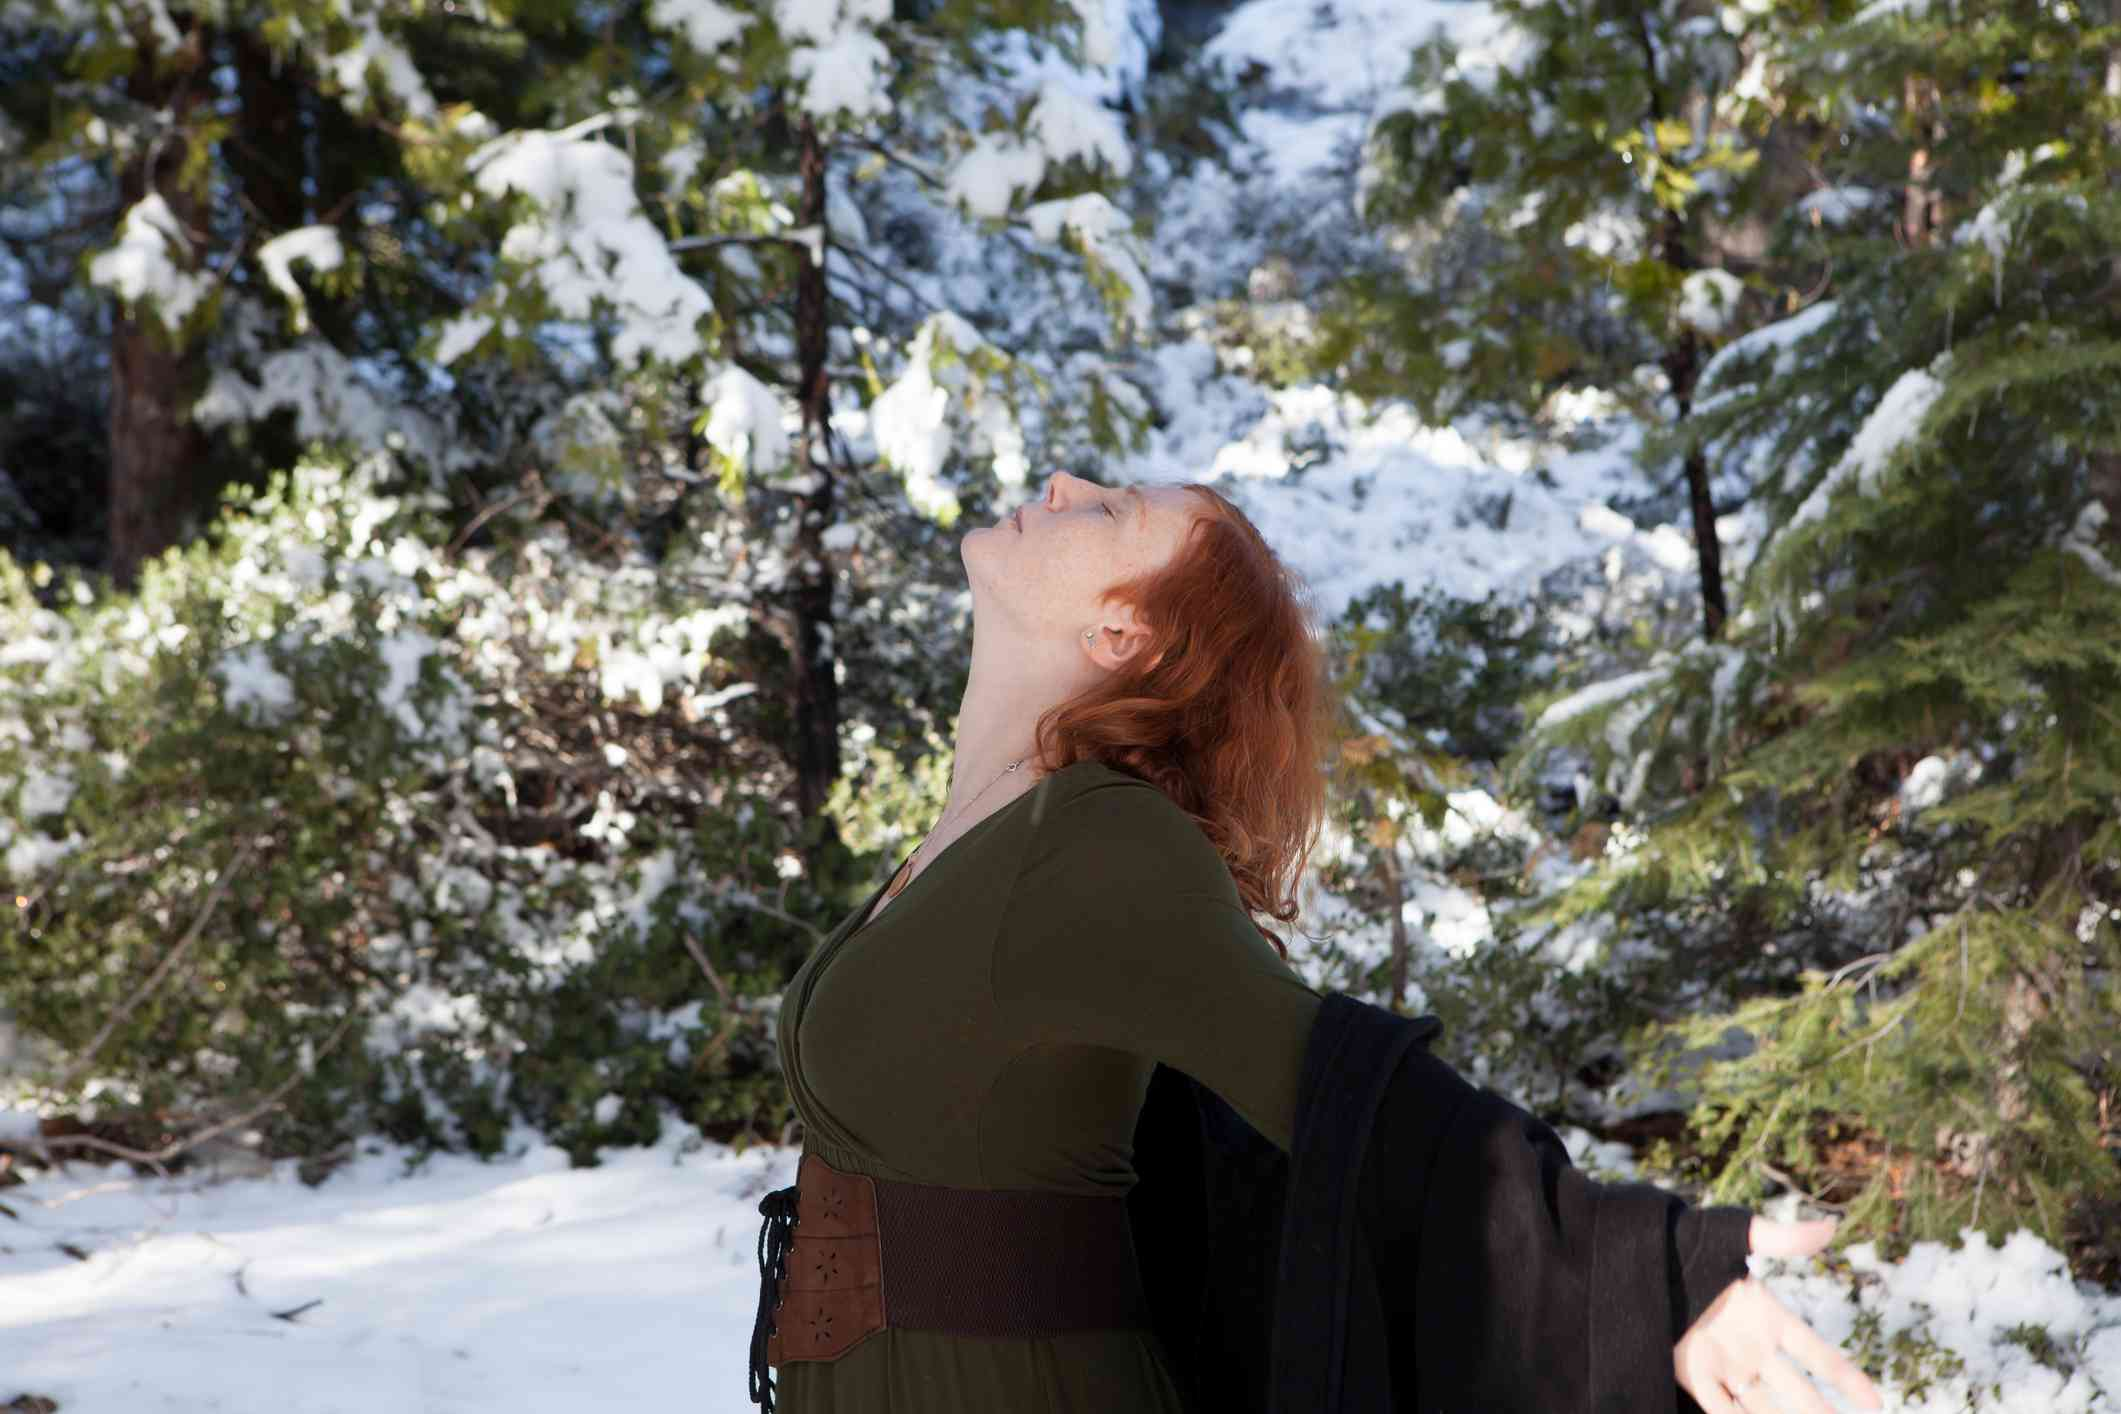 Woman holding ritual in snowy woods